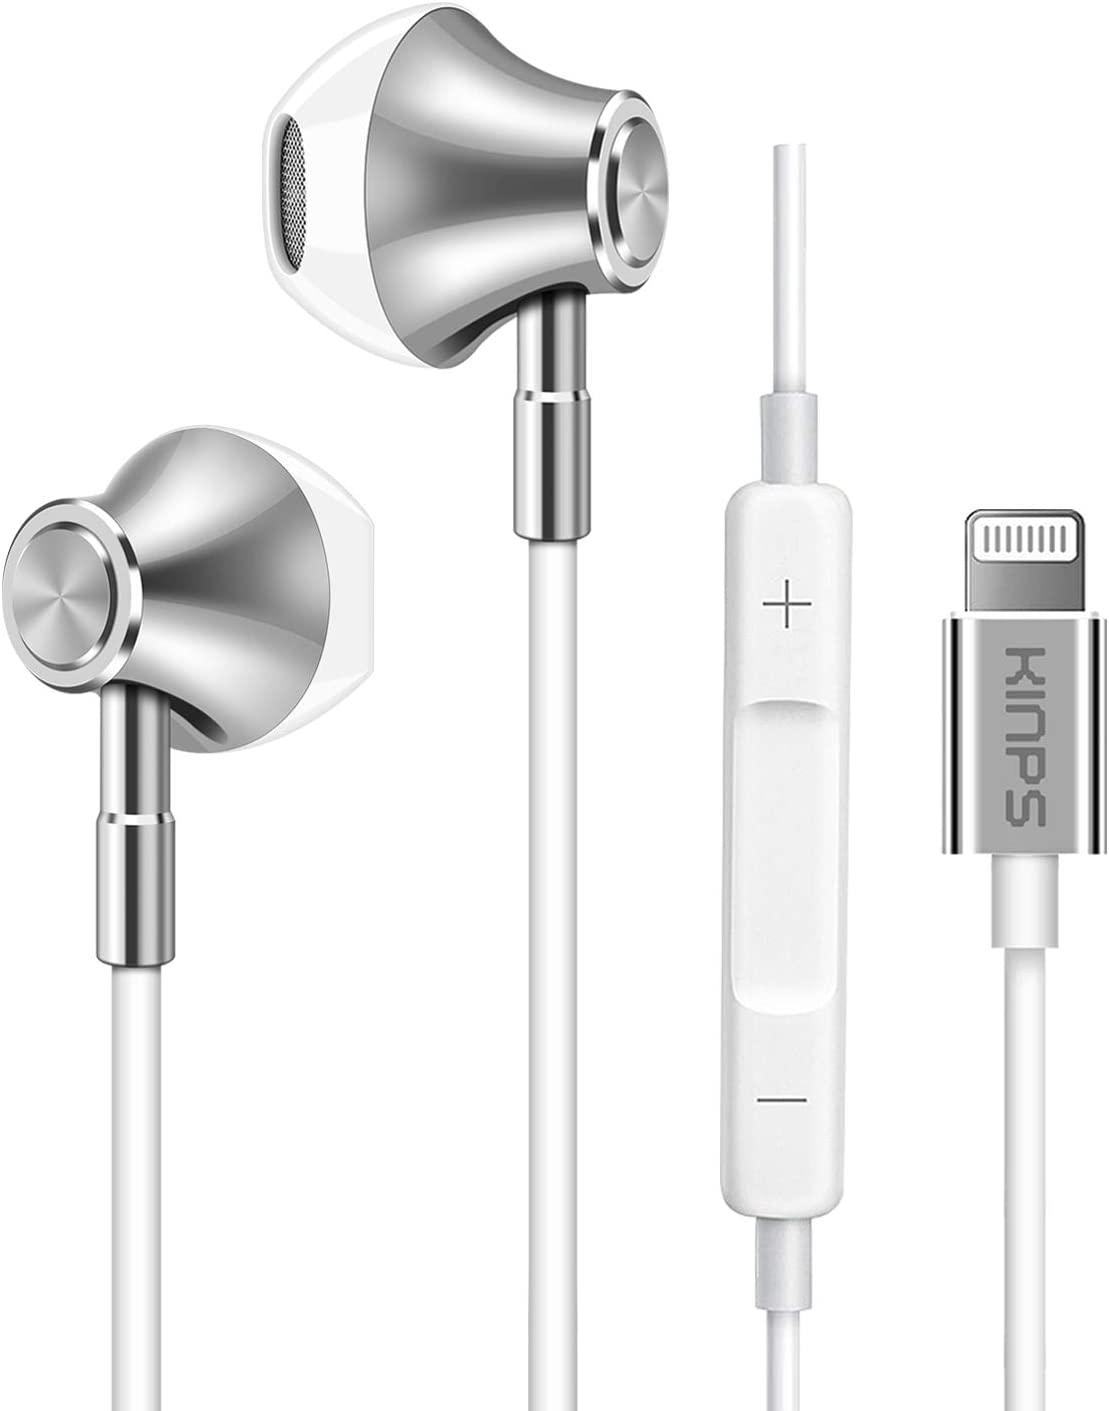 KINPS Apple MFI Certified in-Ear Earphones with Lightning Connector, Earbuds with Remote Microphone Controller Compatible with iPhone 11 Pro/11/X/XS/XS Max/XR/8/7 and so on (Silver)